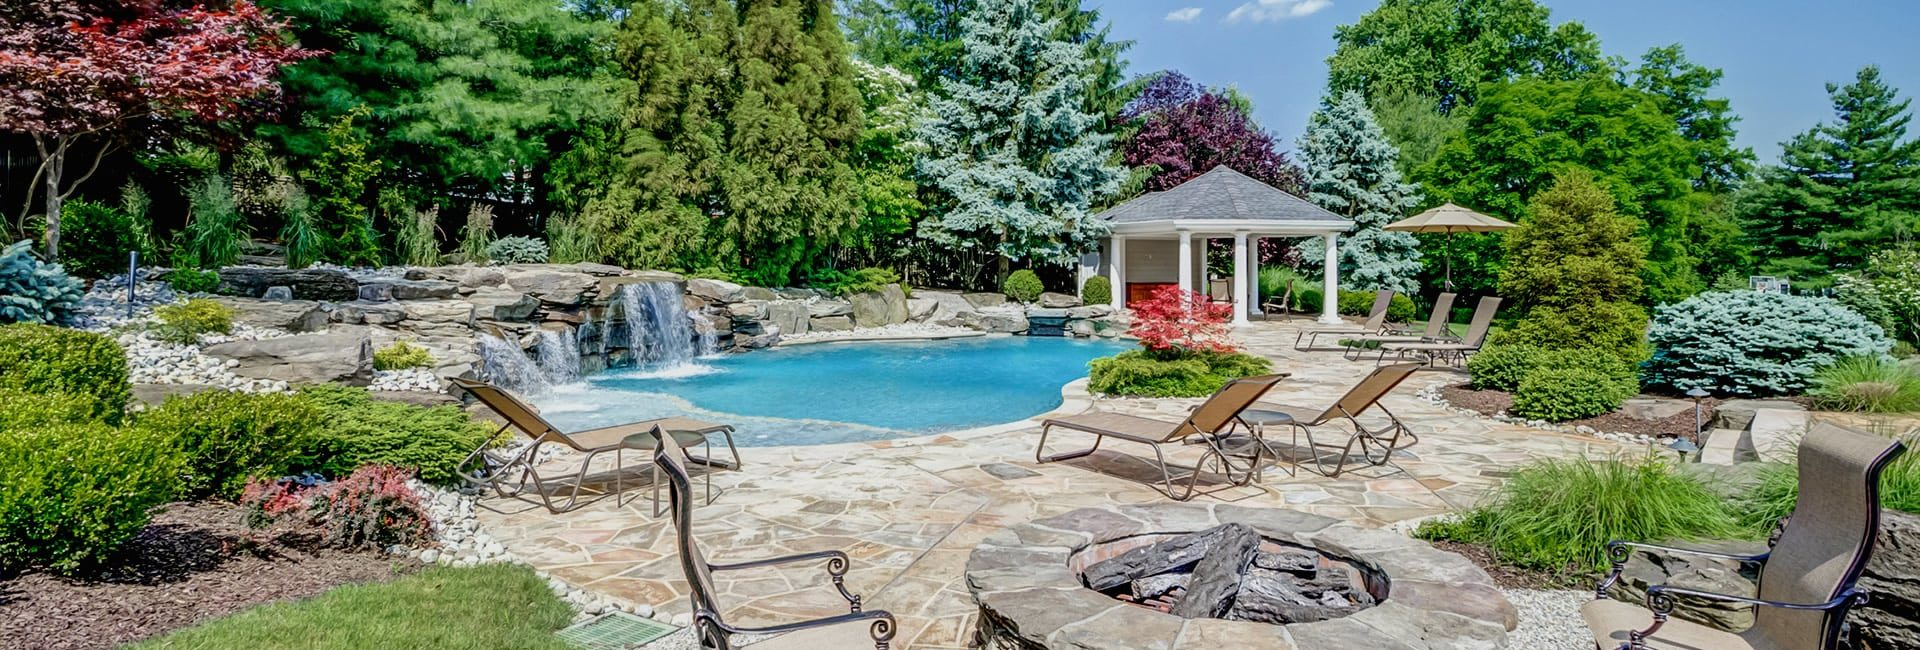 Outdoor Living Spaces with Pool, Cabana, Firepit ad Beautiful Trees